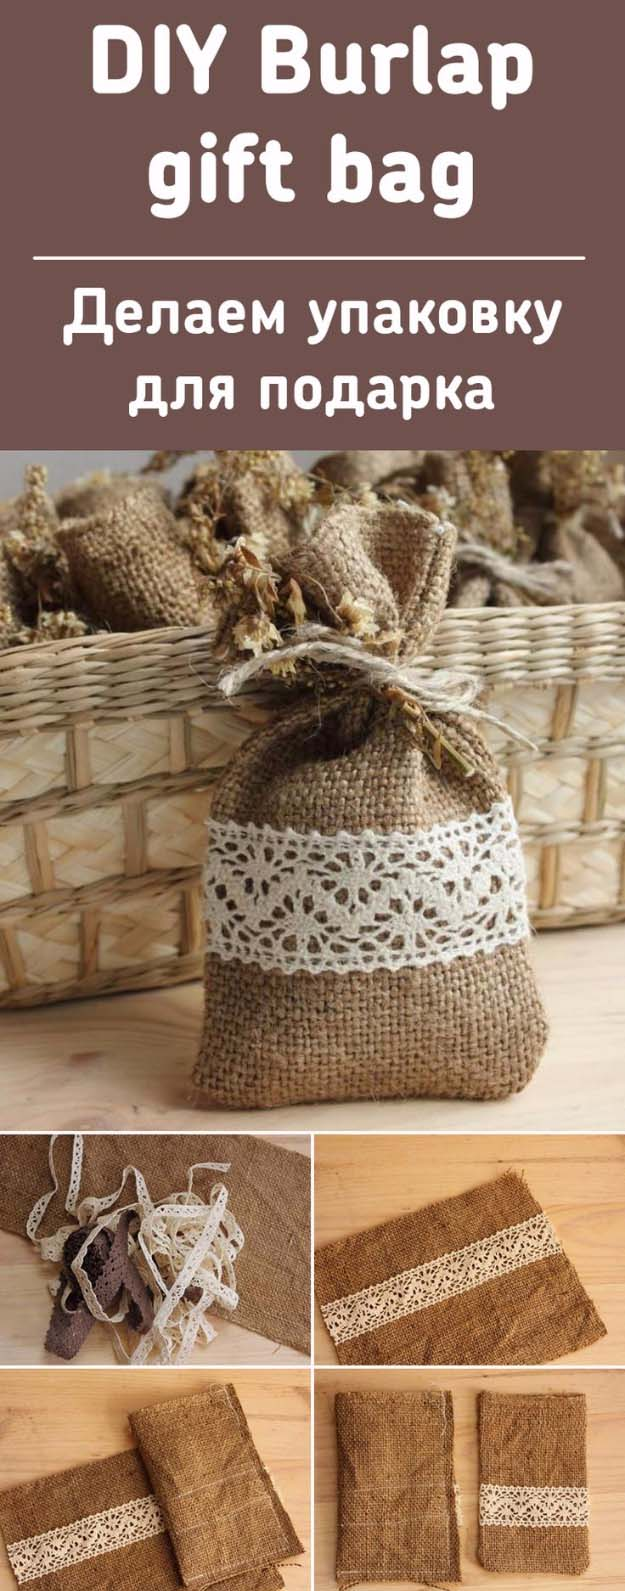 DIY Projects with Burlap and Creative Burlap Crafts for Home Decor, Gifts and More | Burlap Gift Bag | http://diyjoy.com/diy-projects-with-burlap